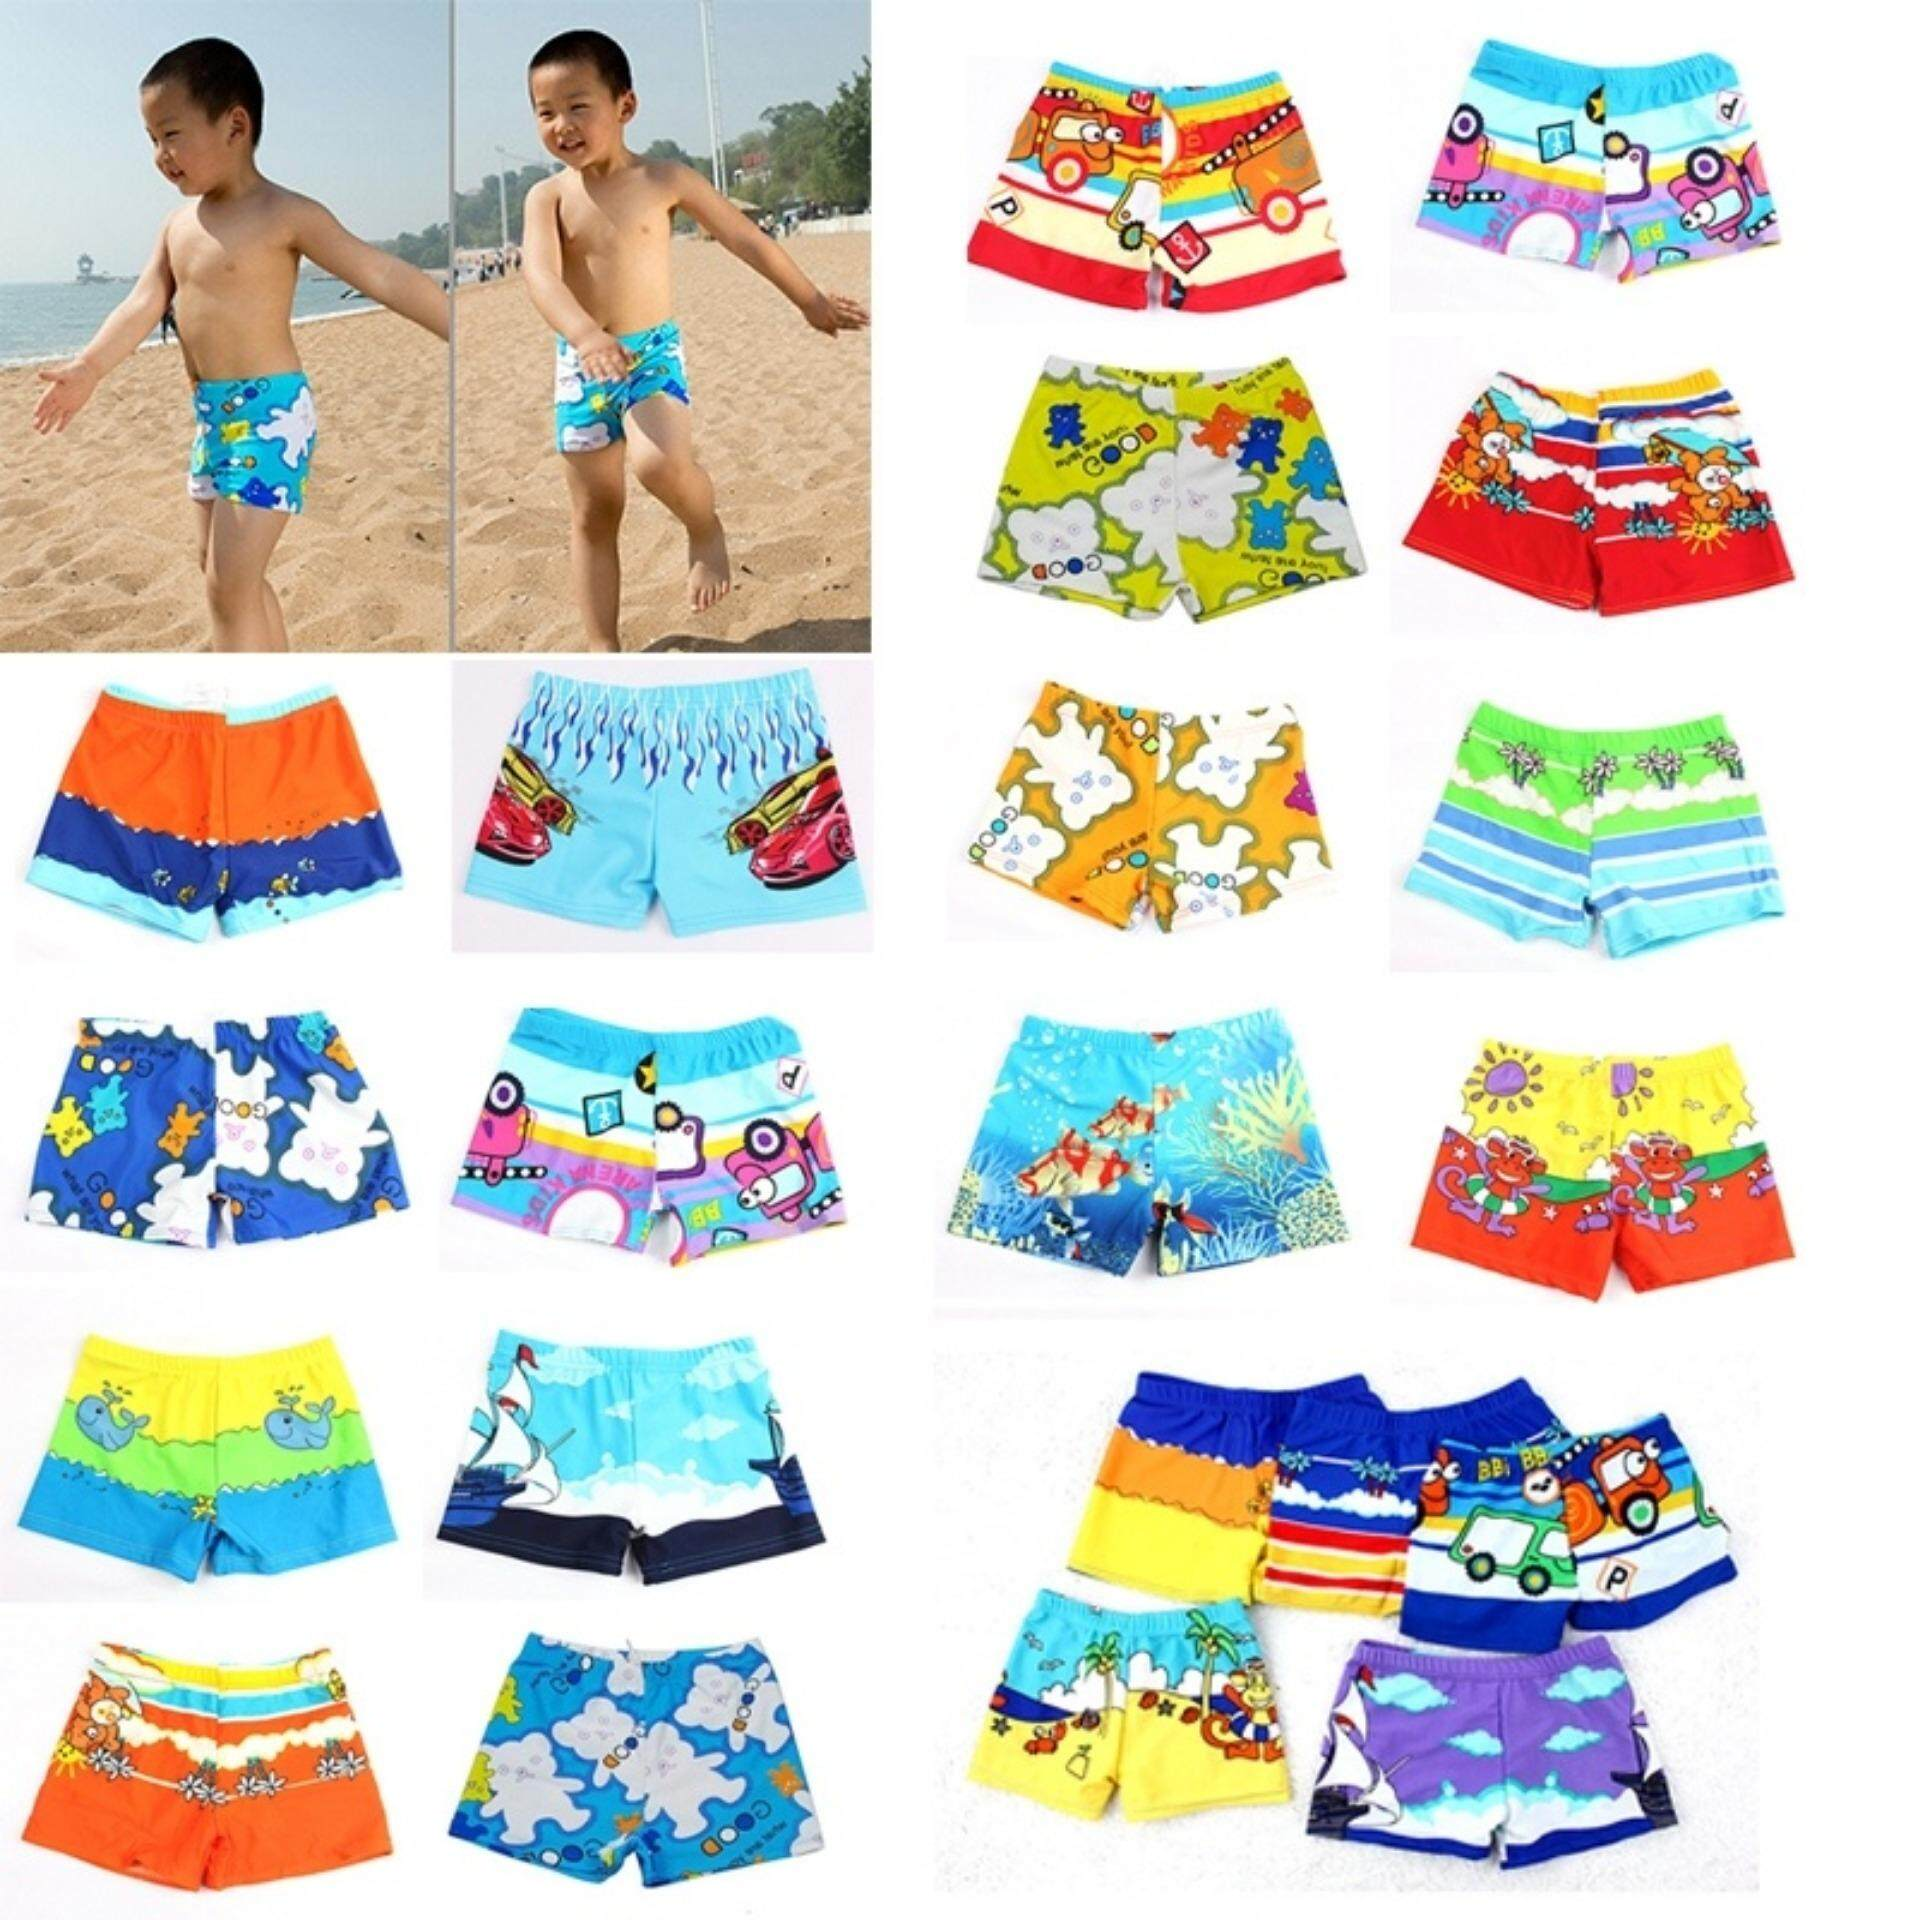 Baby Boy Swimwear Cartoon Pattern Surfing Swim Trunks For Kids Colors Random Medium - Intl By Bloom Zoom.